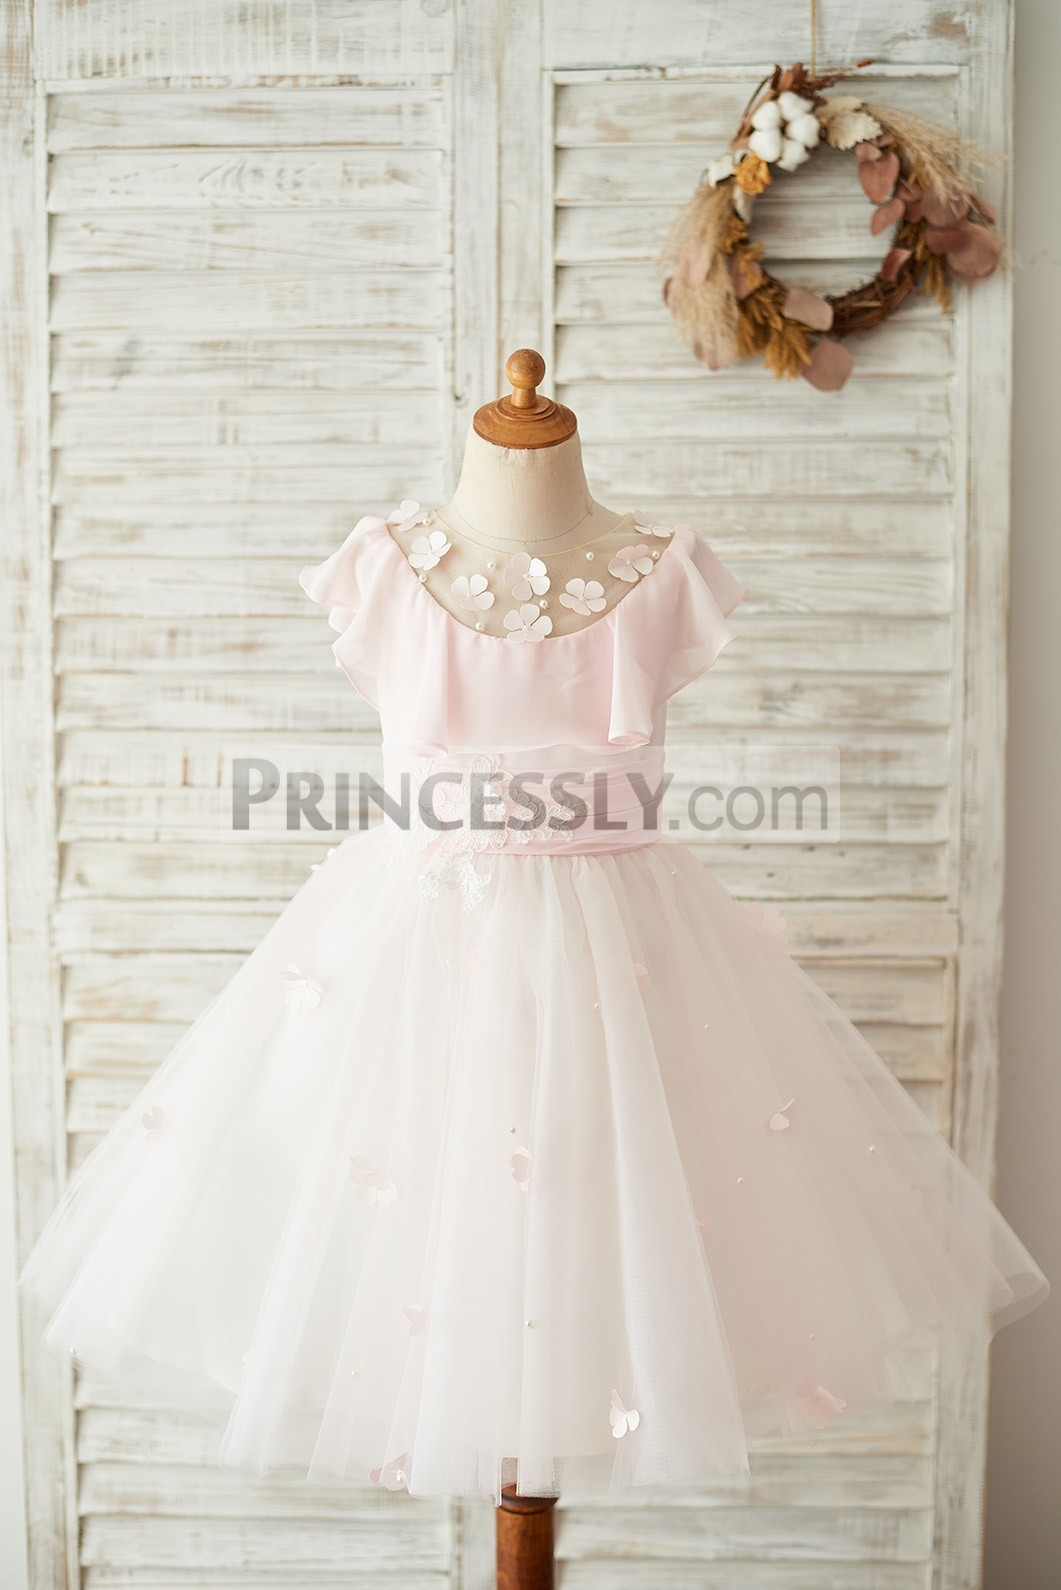 Pink Chiffon Tulle Flower Girl Dress with Handmade Flowers